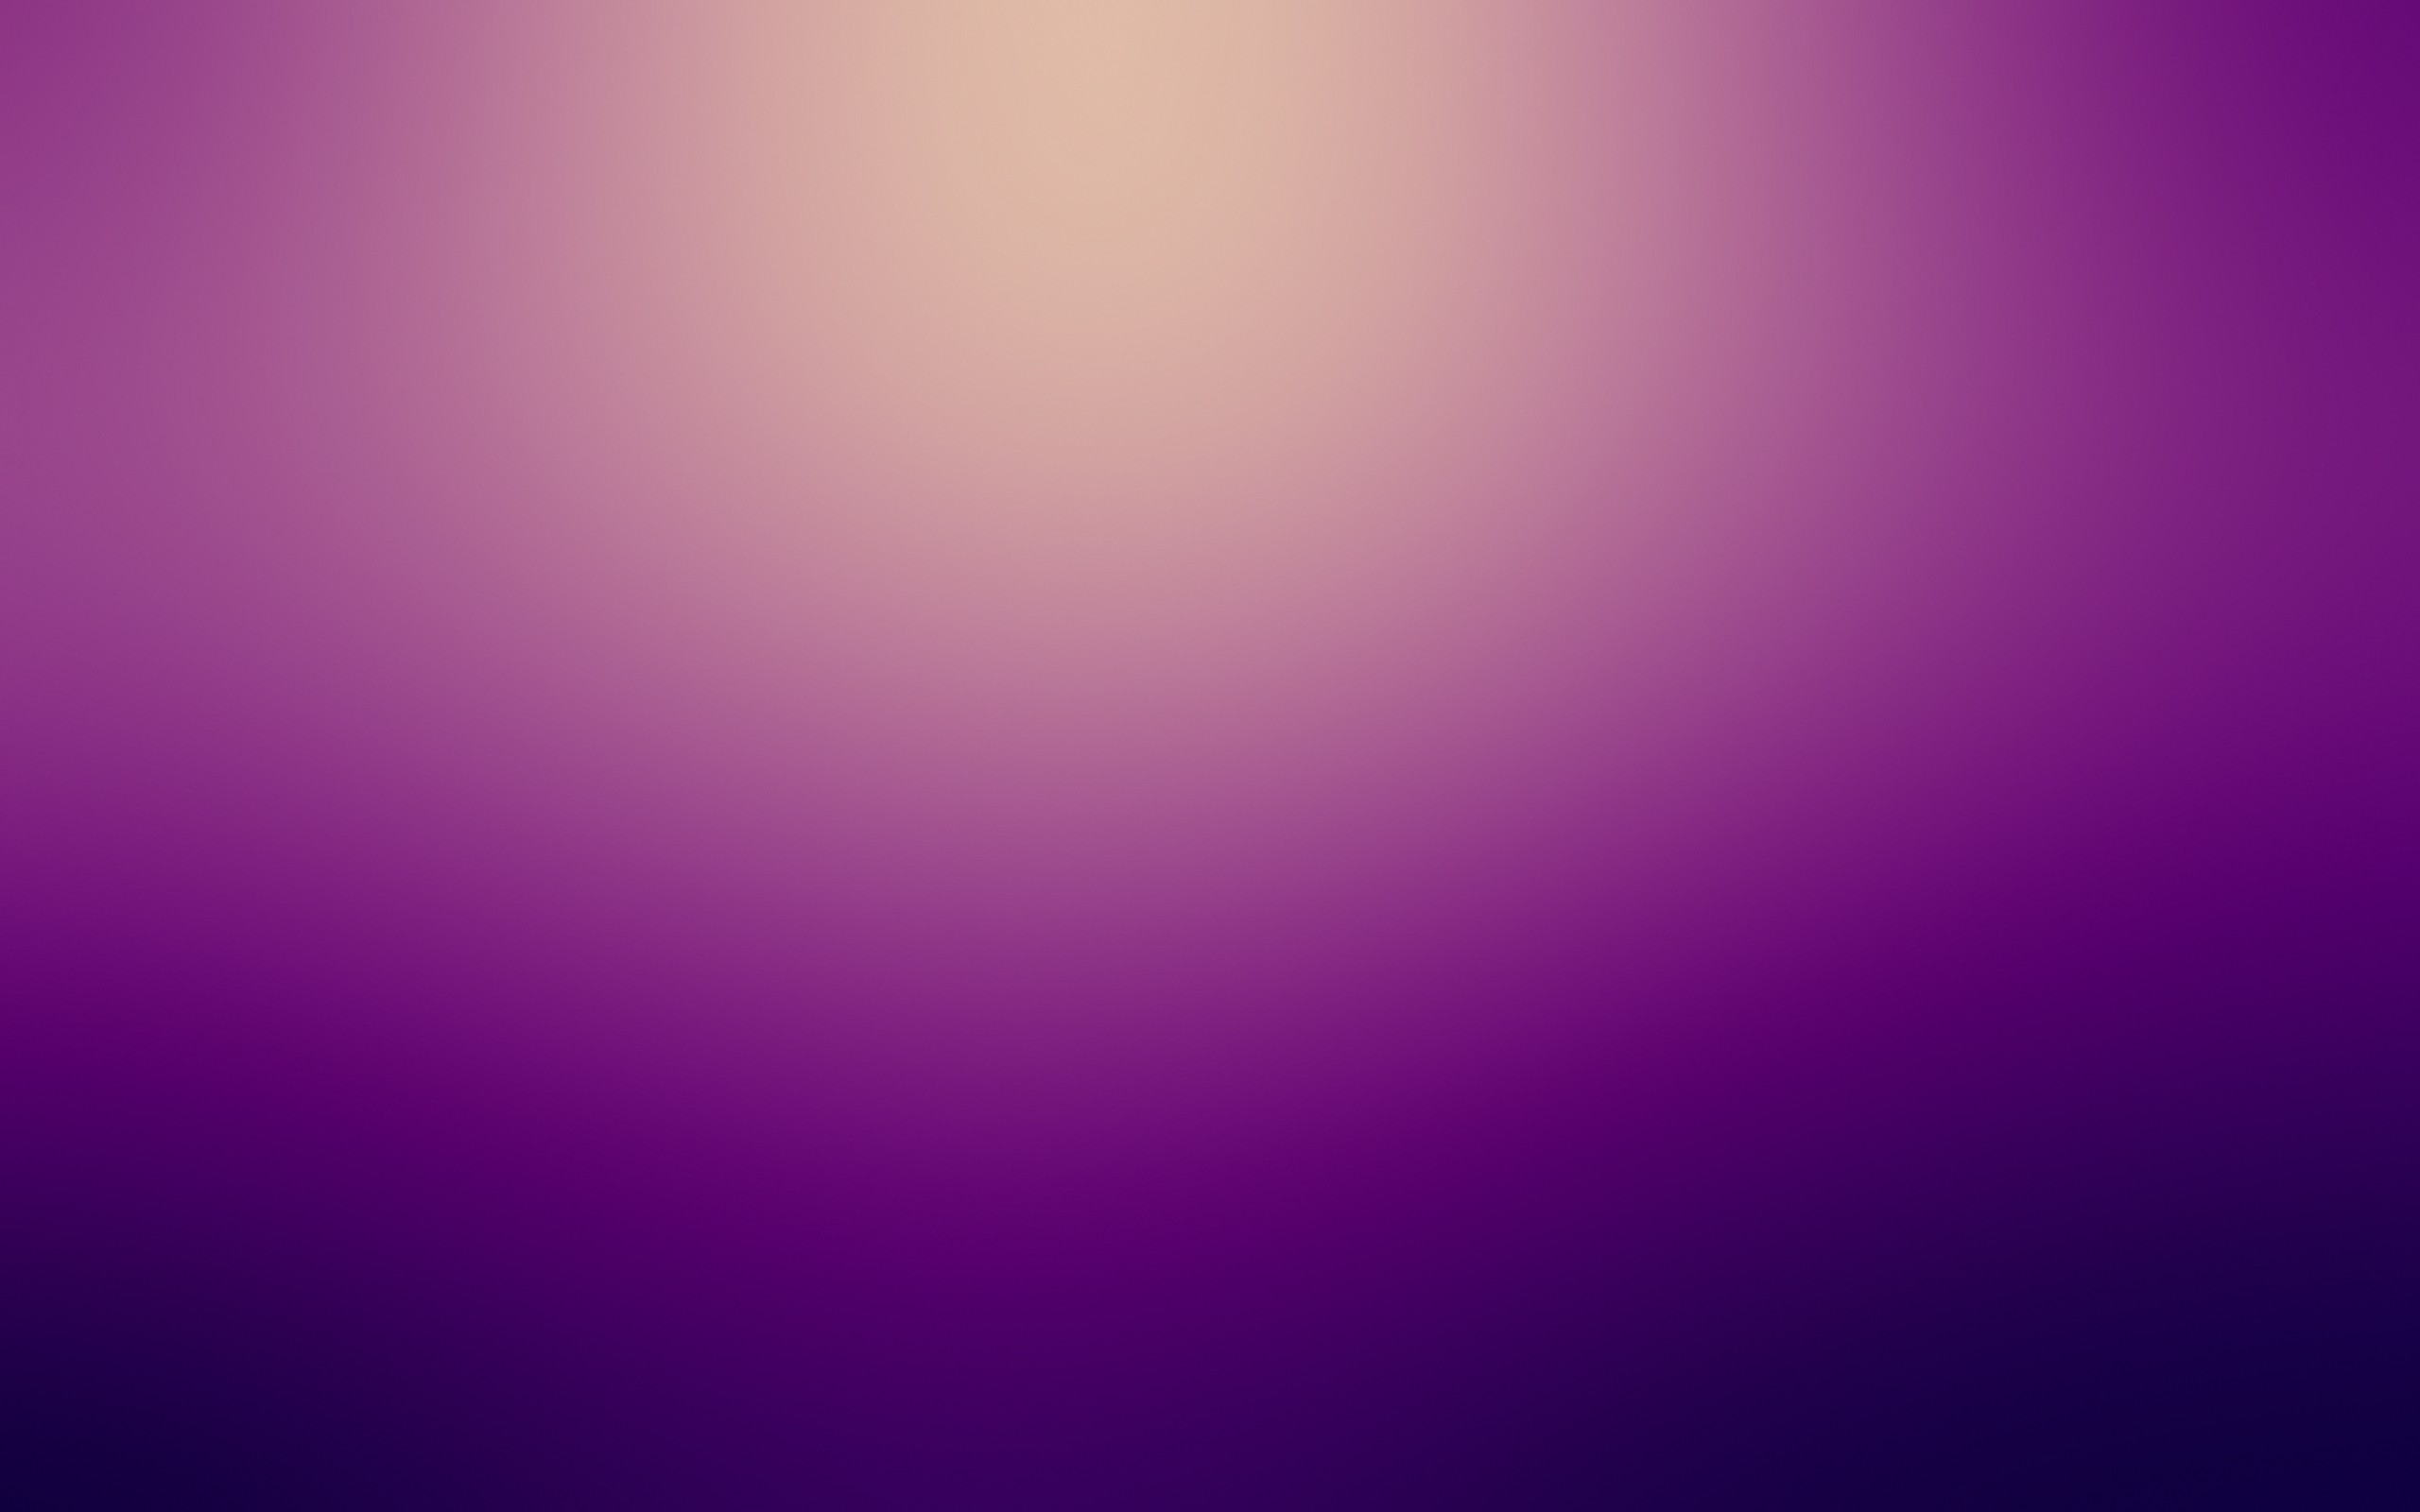 wallpaper bright line purple - photo #9